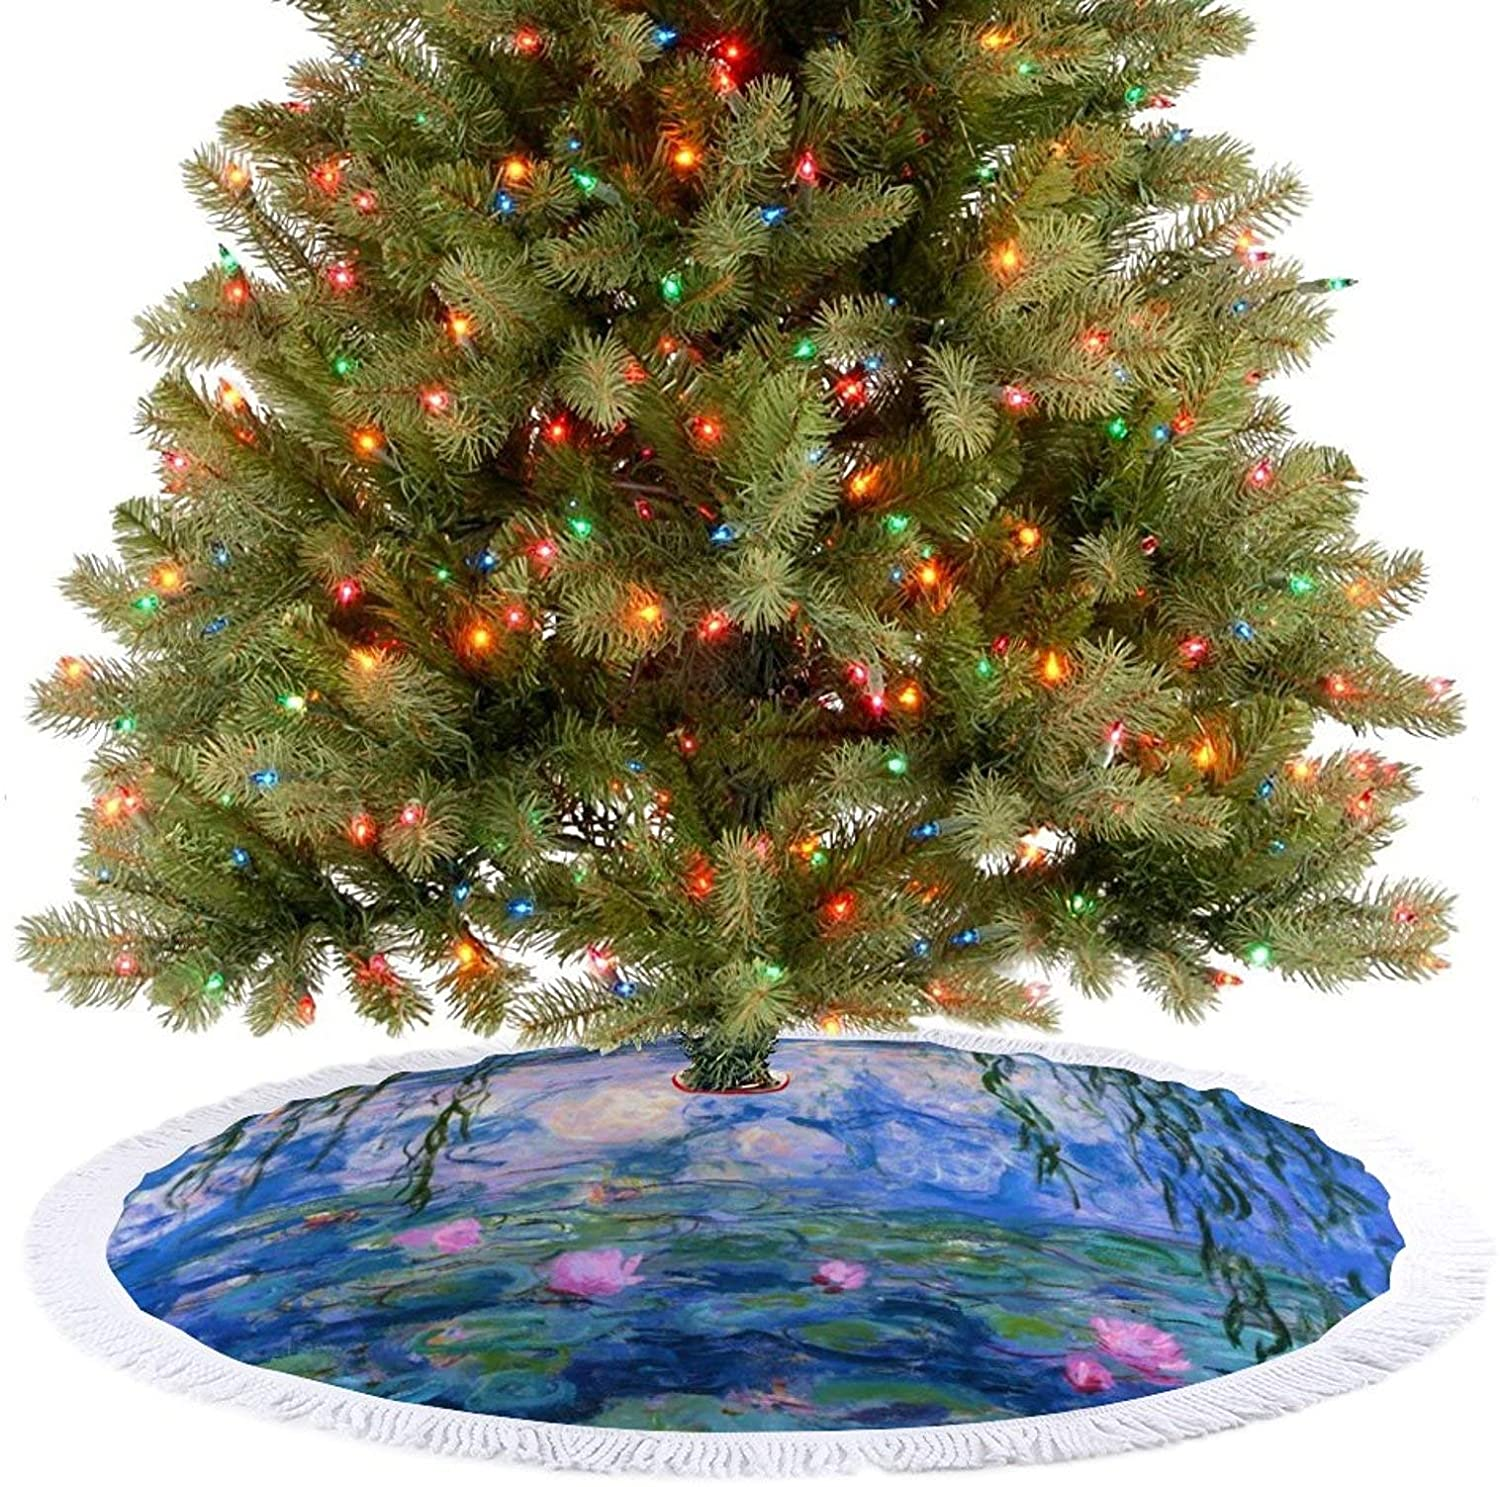 Amidaky Claude Monet's Water Lilies Christmas Tree Skirt for Christmas Holiday Party Decoration Indoor and Outdoor 36''×36''